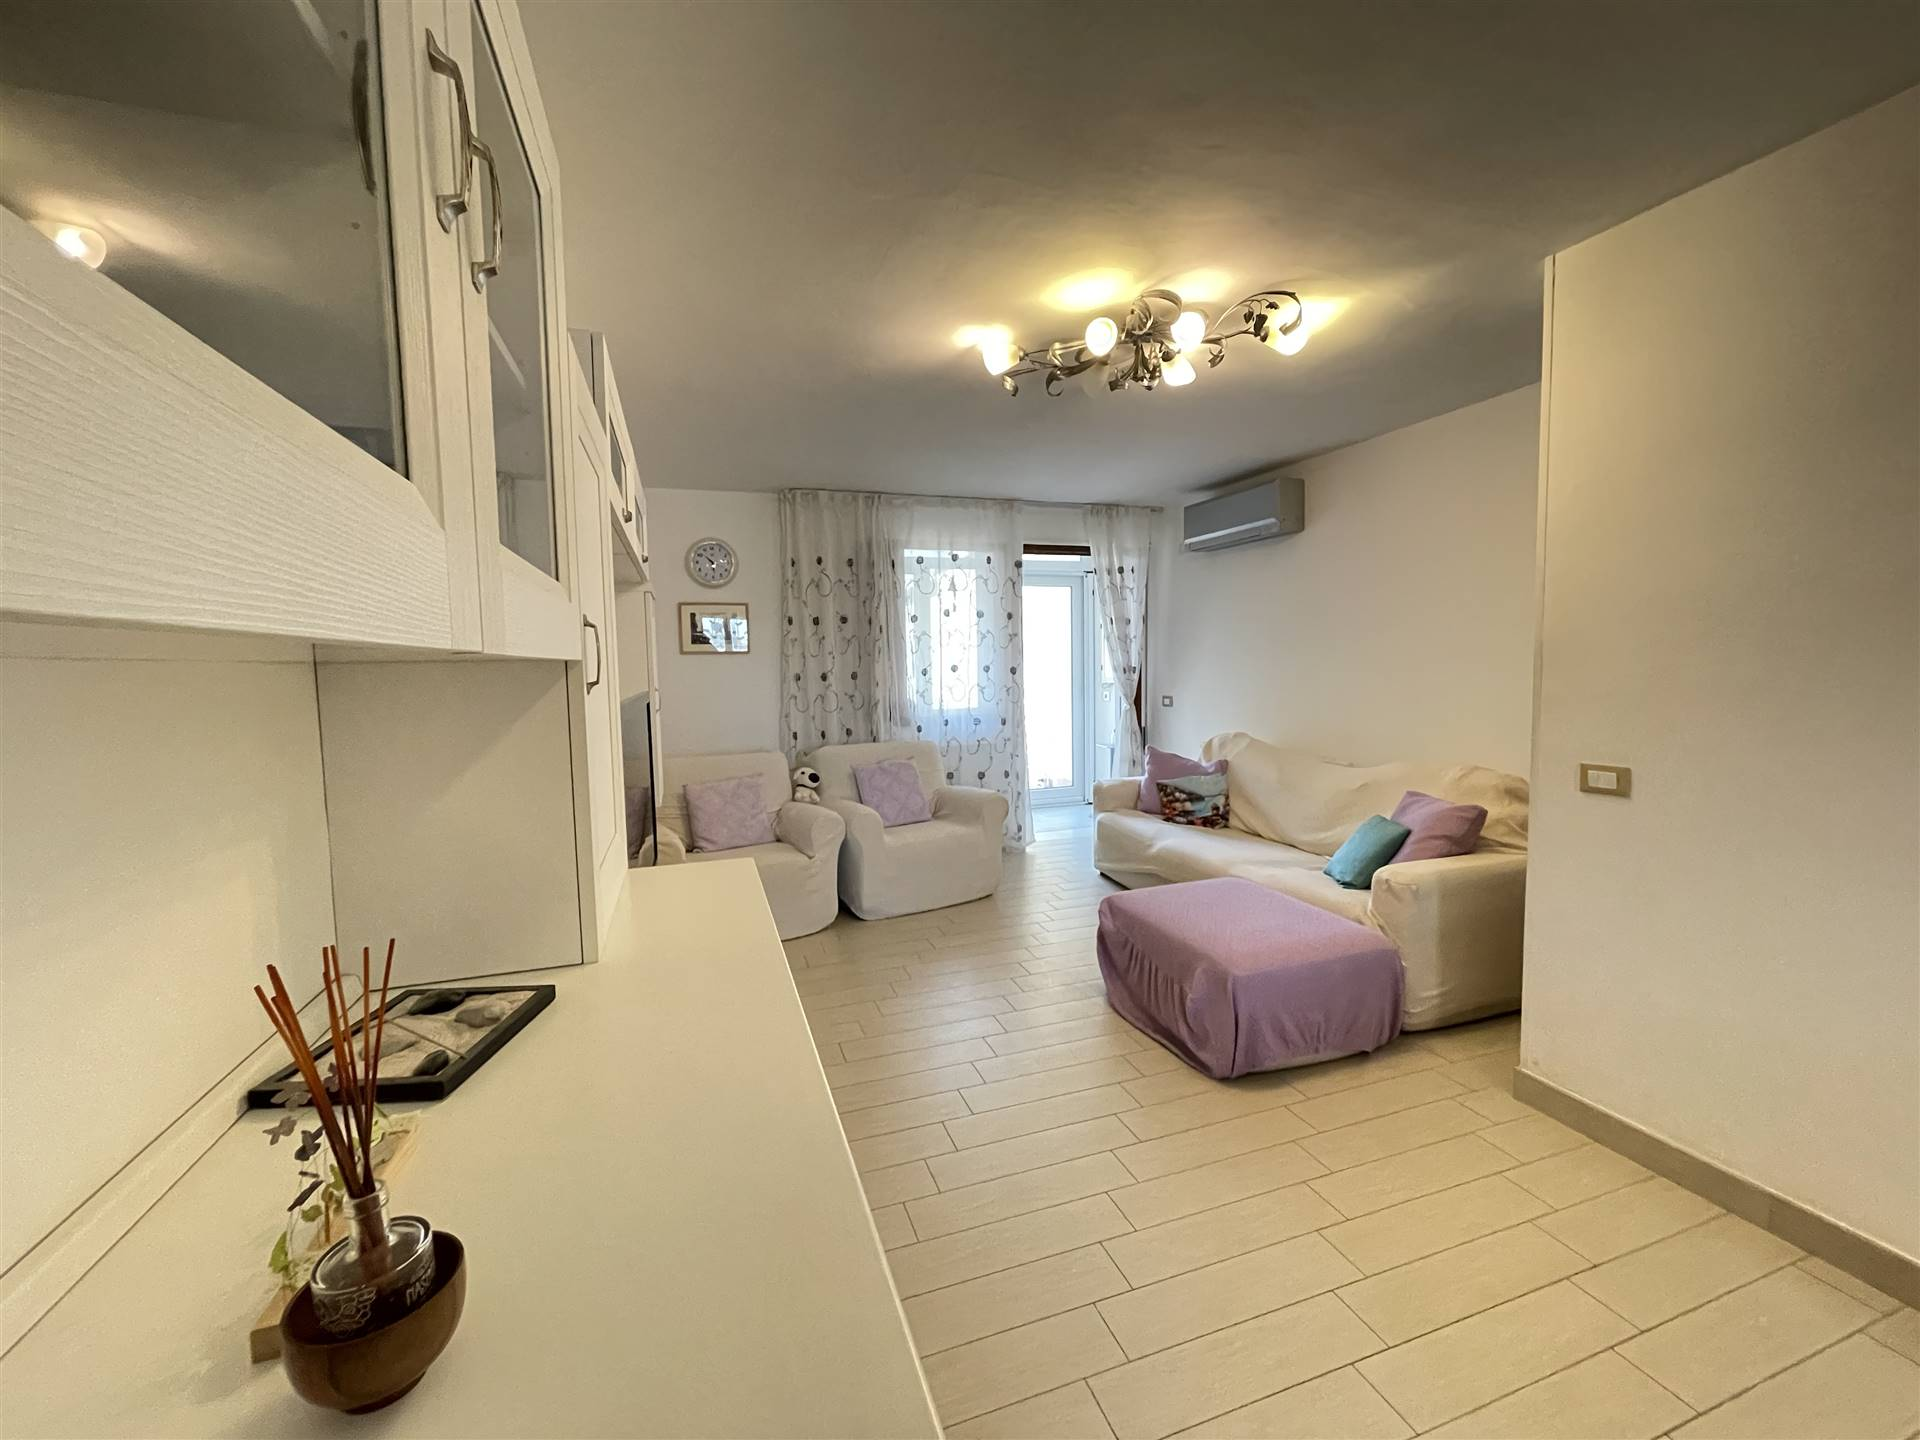 BRONDOLO, CHIOGGIA, Apartment for sale of 90 Sq. mt., Restored, Heating Individual heating system, placed at Ground on 2, composed by: 3.5 Rooms,